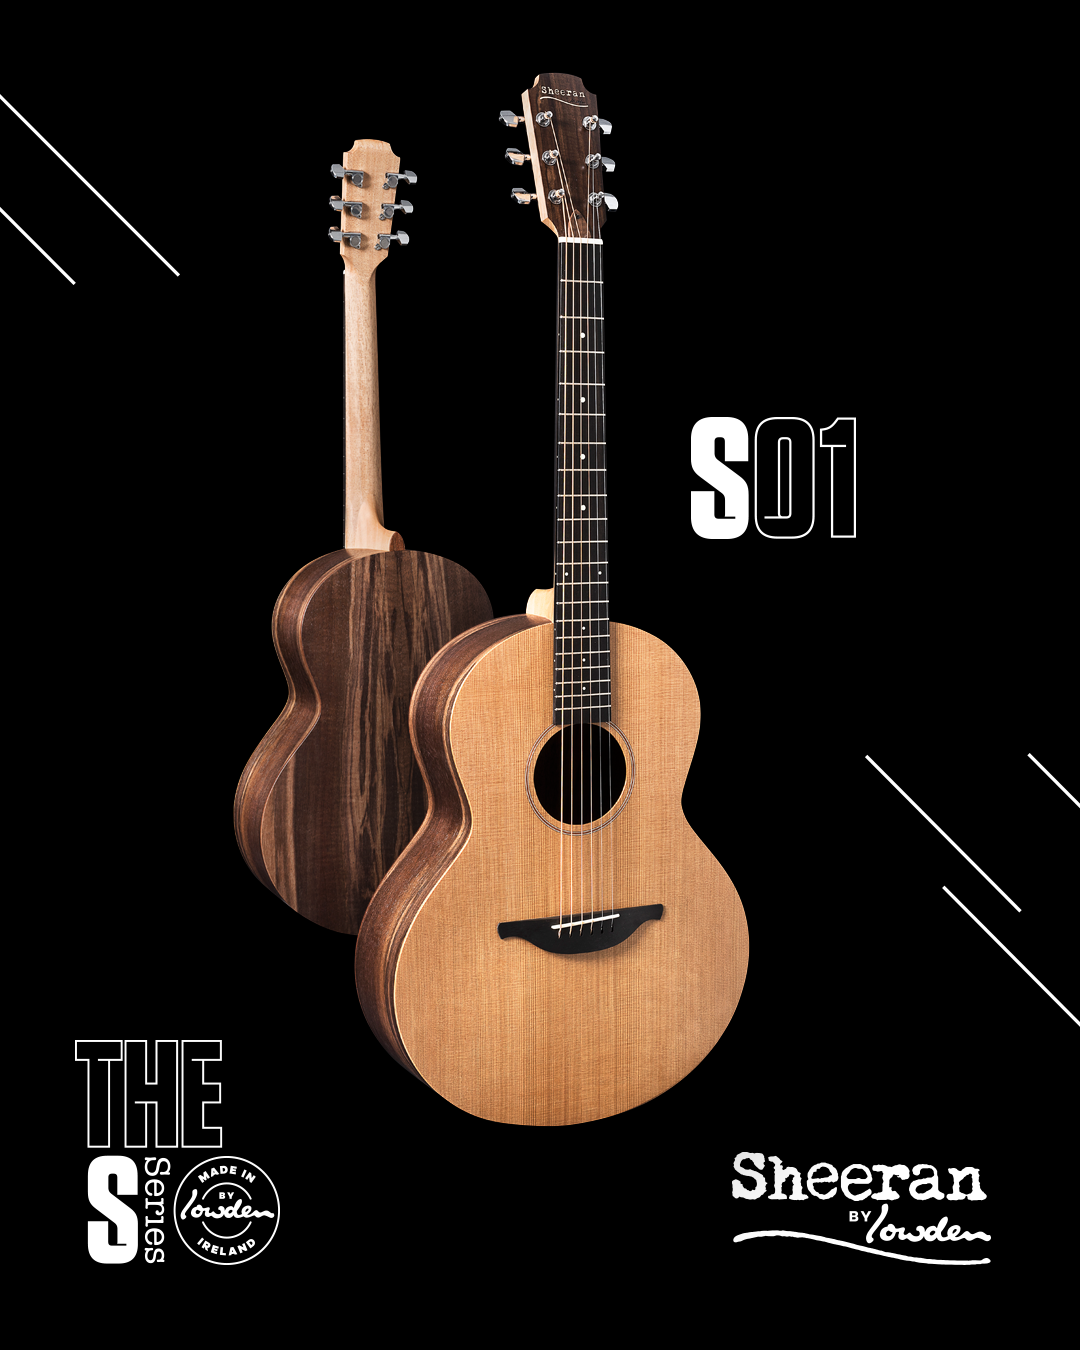 Sheeran by Lowden S01